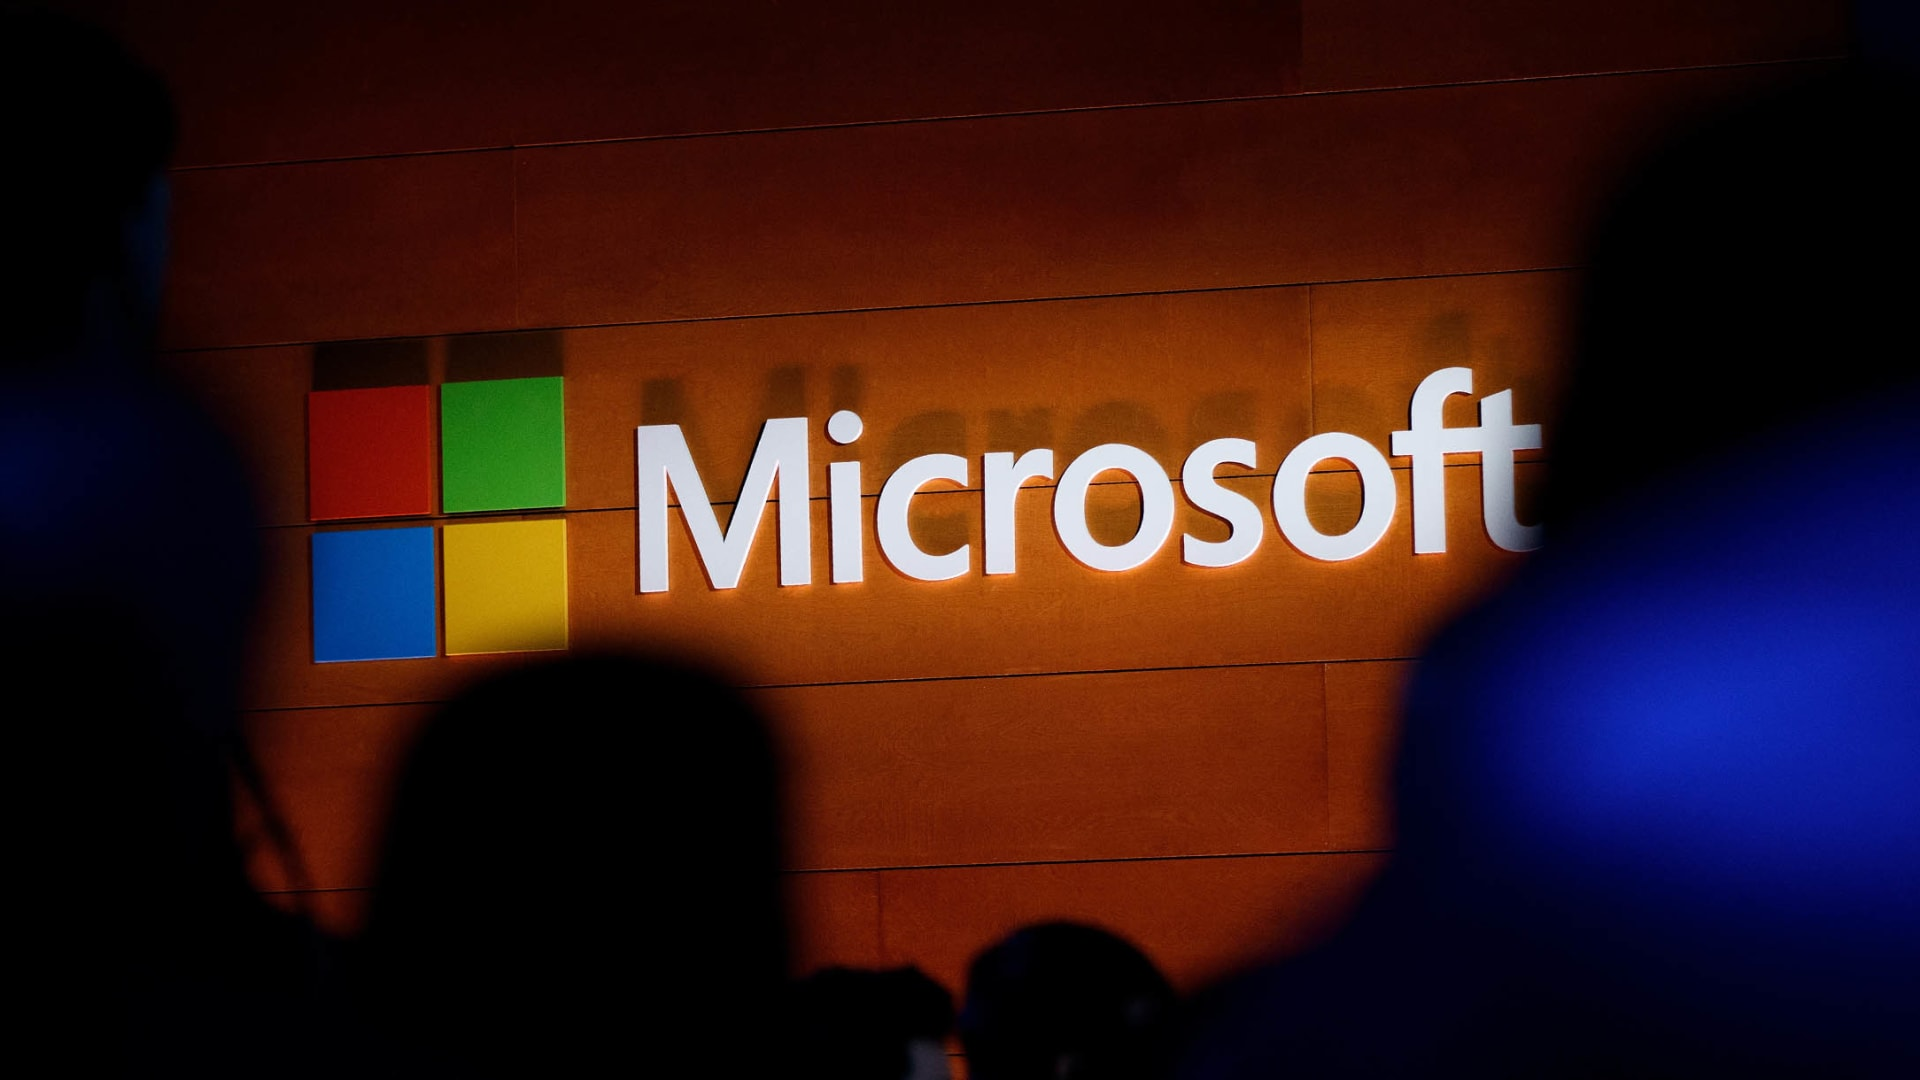 Not Happy About the Microsoft Office Price Hike? 3 Options to Consider Instead